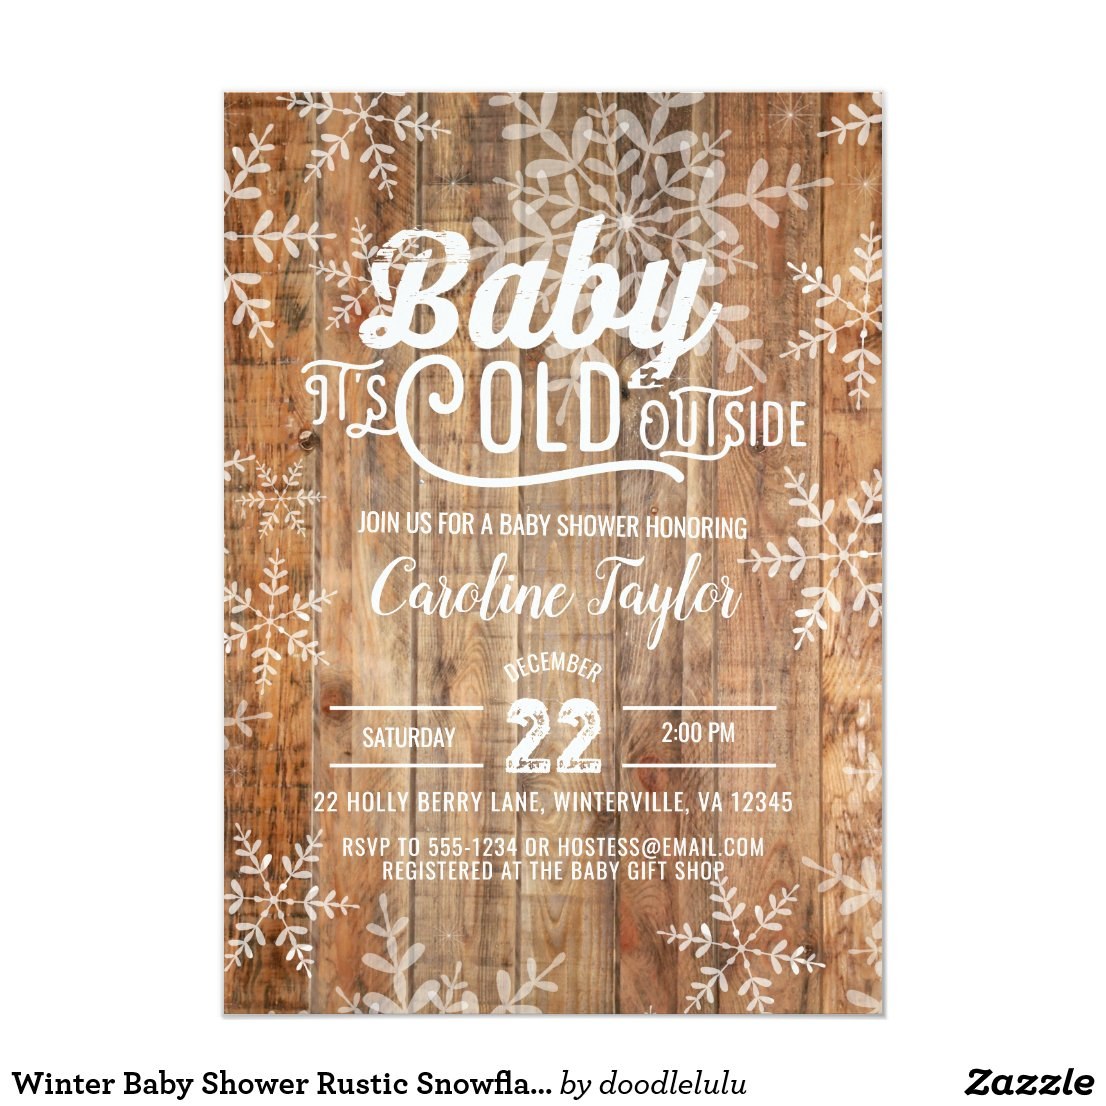 Winter Baby Shower Rustic Snowflakes on Wood Invitation